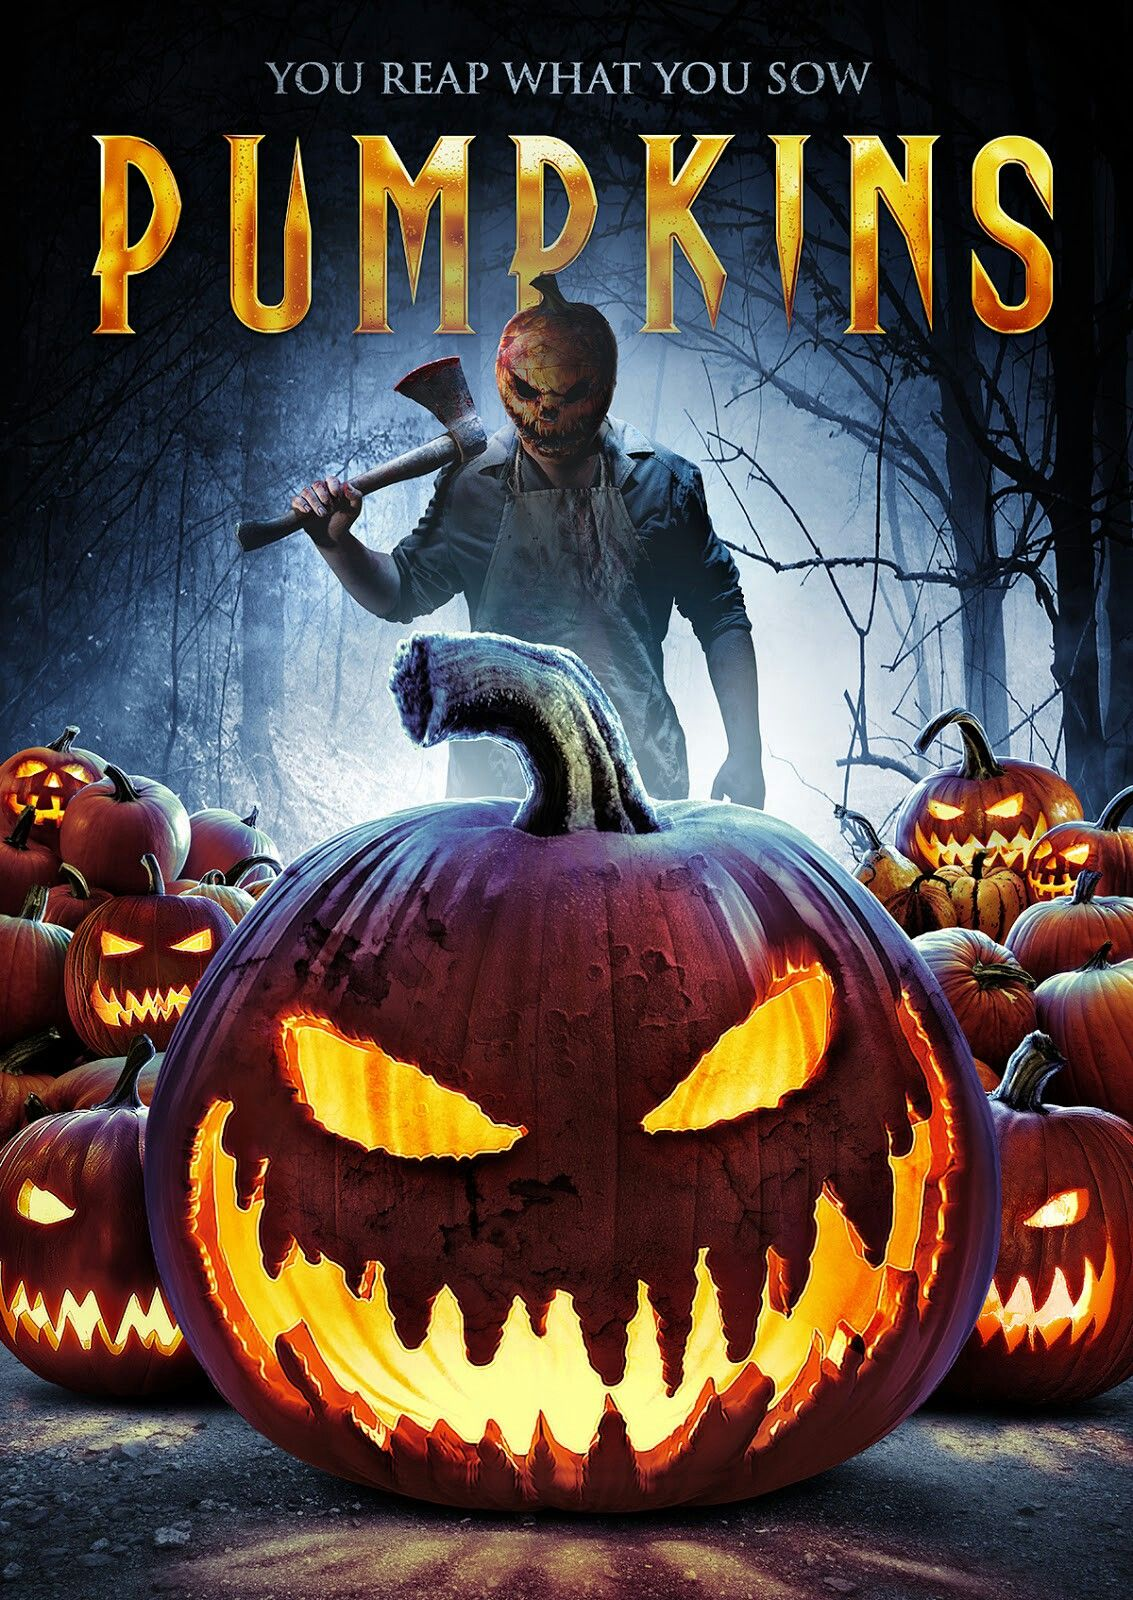 Pumpkins (2018) in 2020 Scary movies, Horror posters, Horror